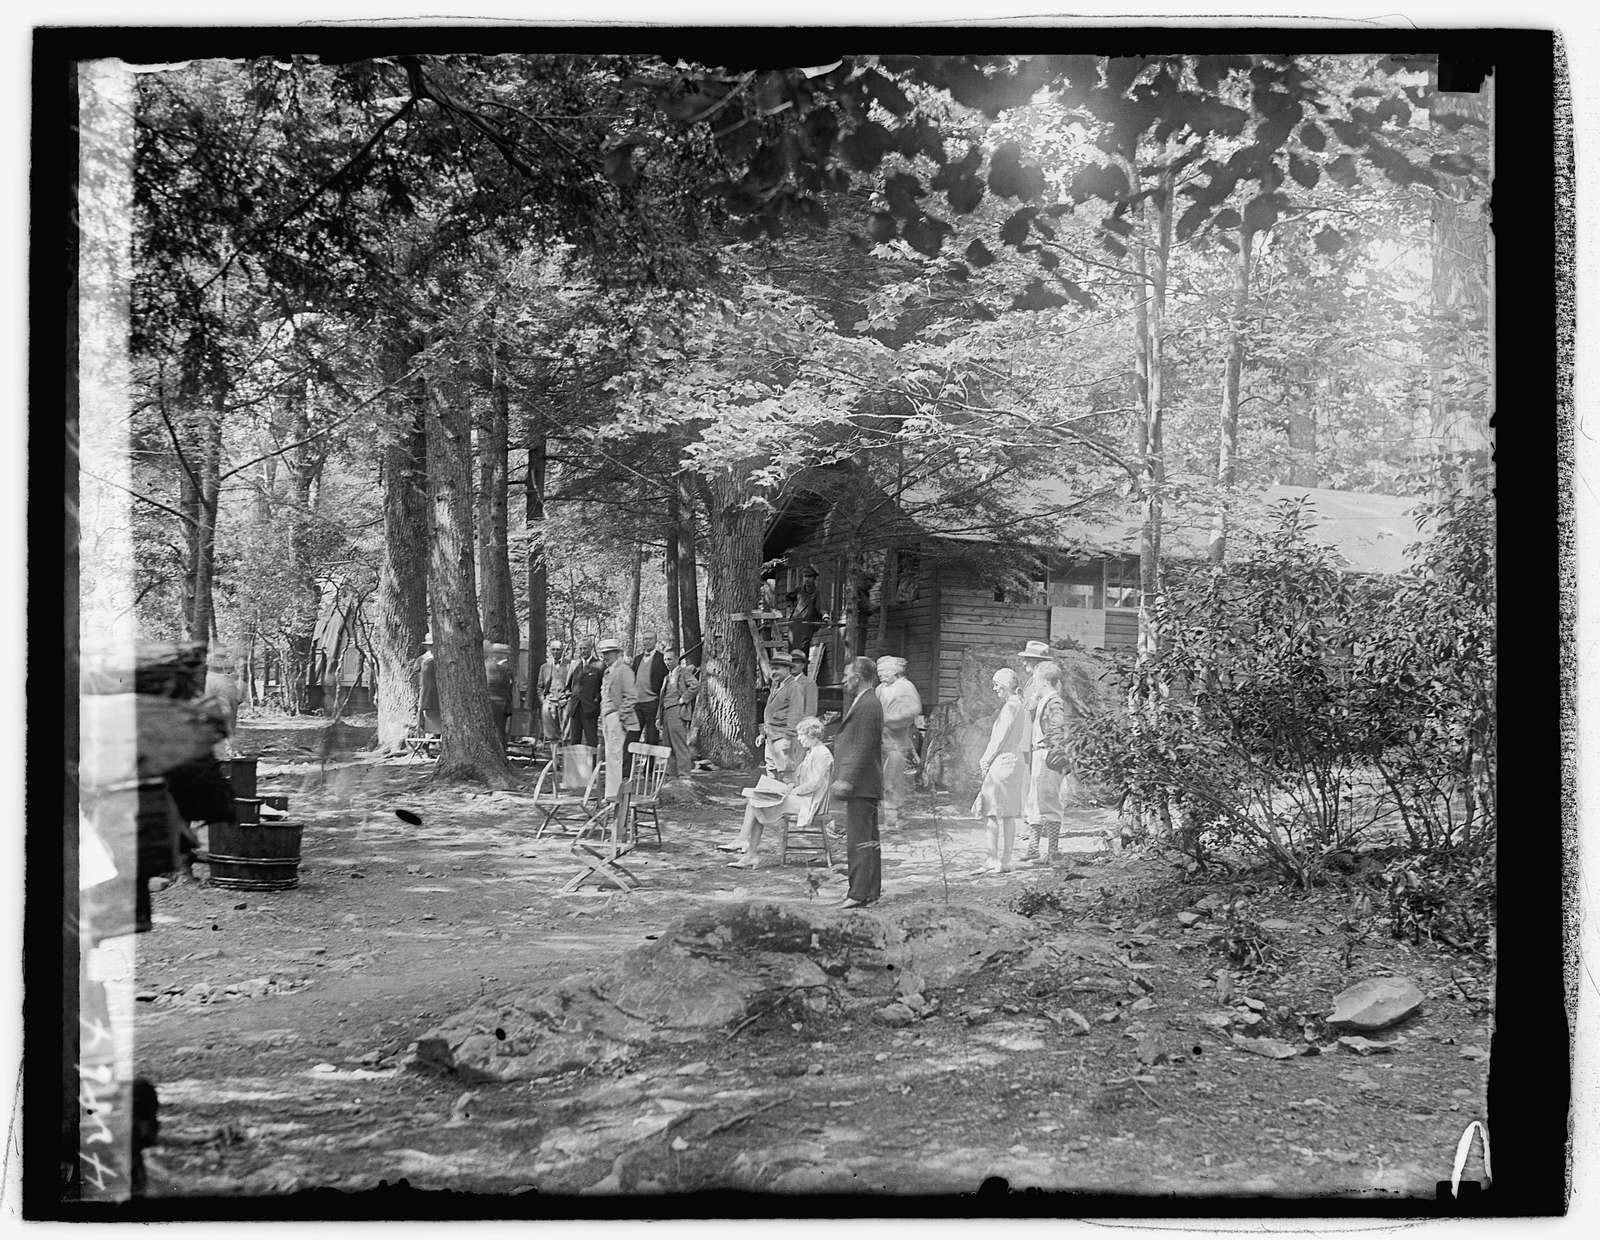 Hoover camp on the Rapidan, 81729